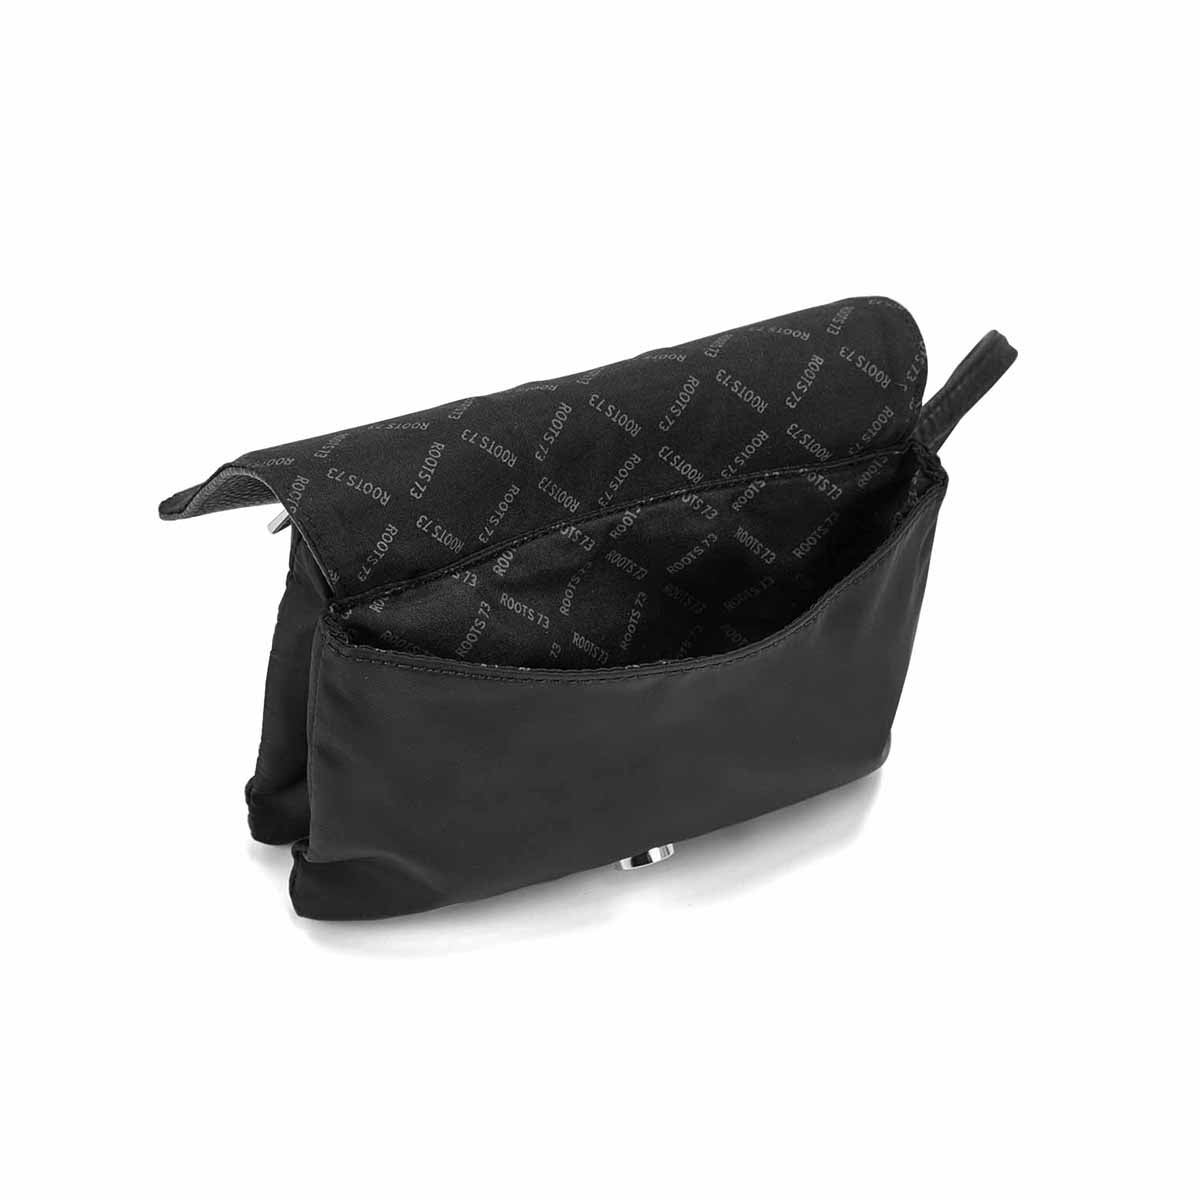 Lds Roots73 blk mini crossbody bag